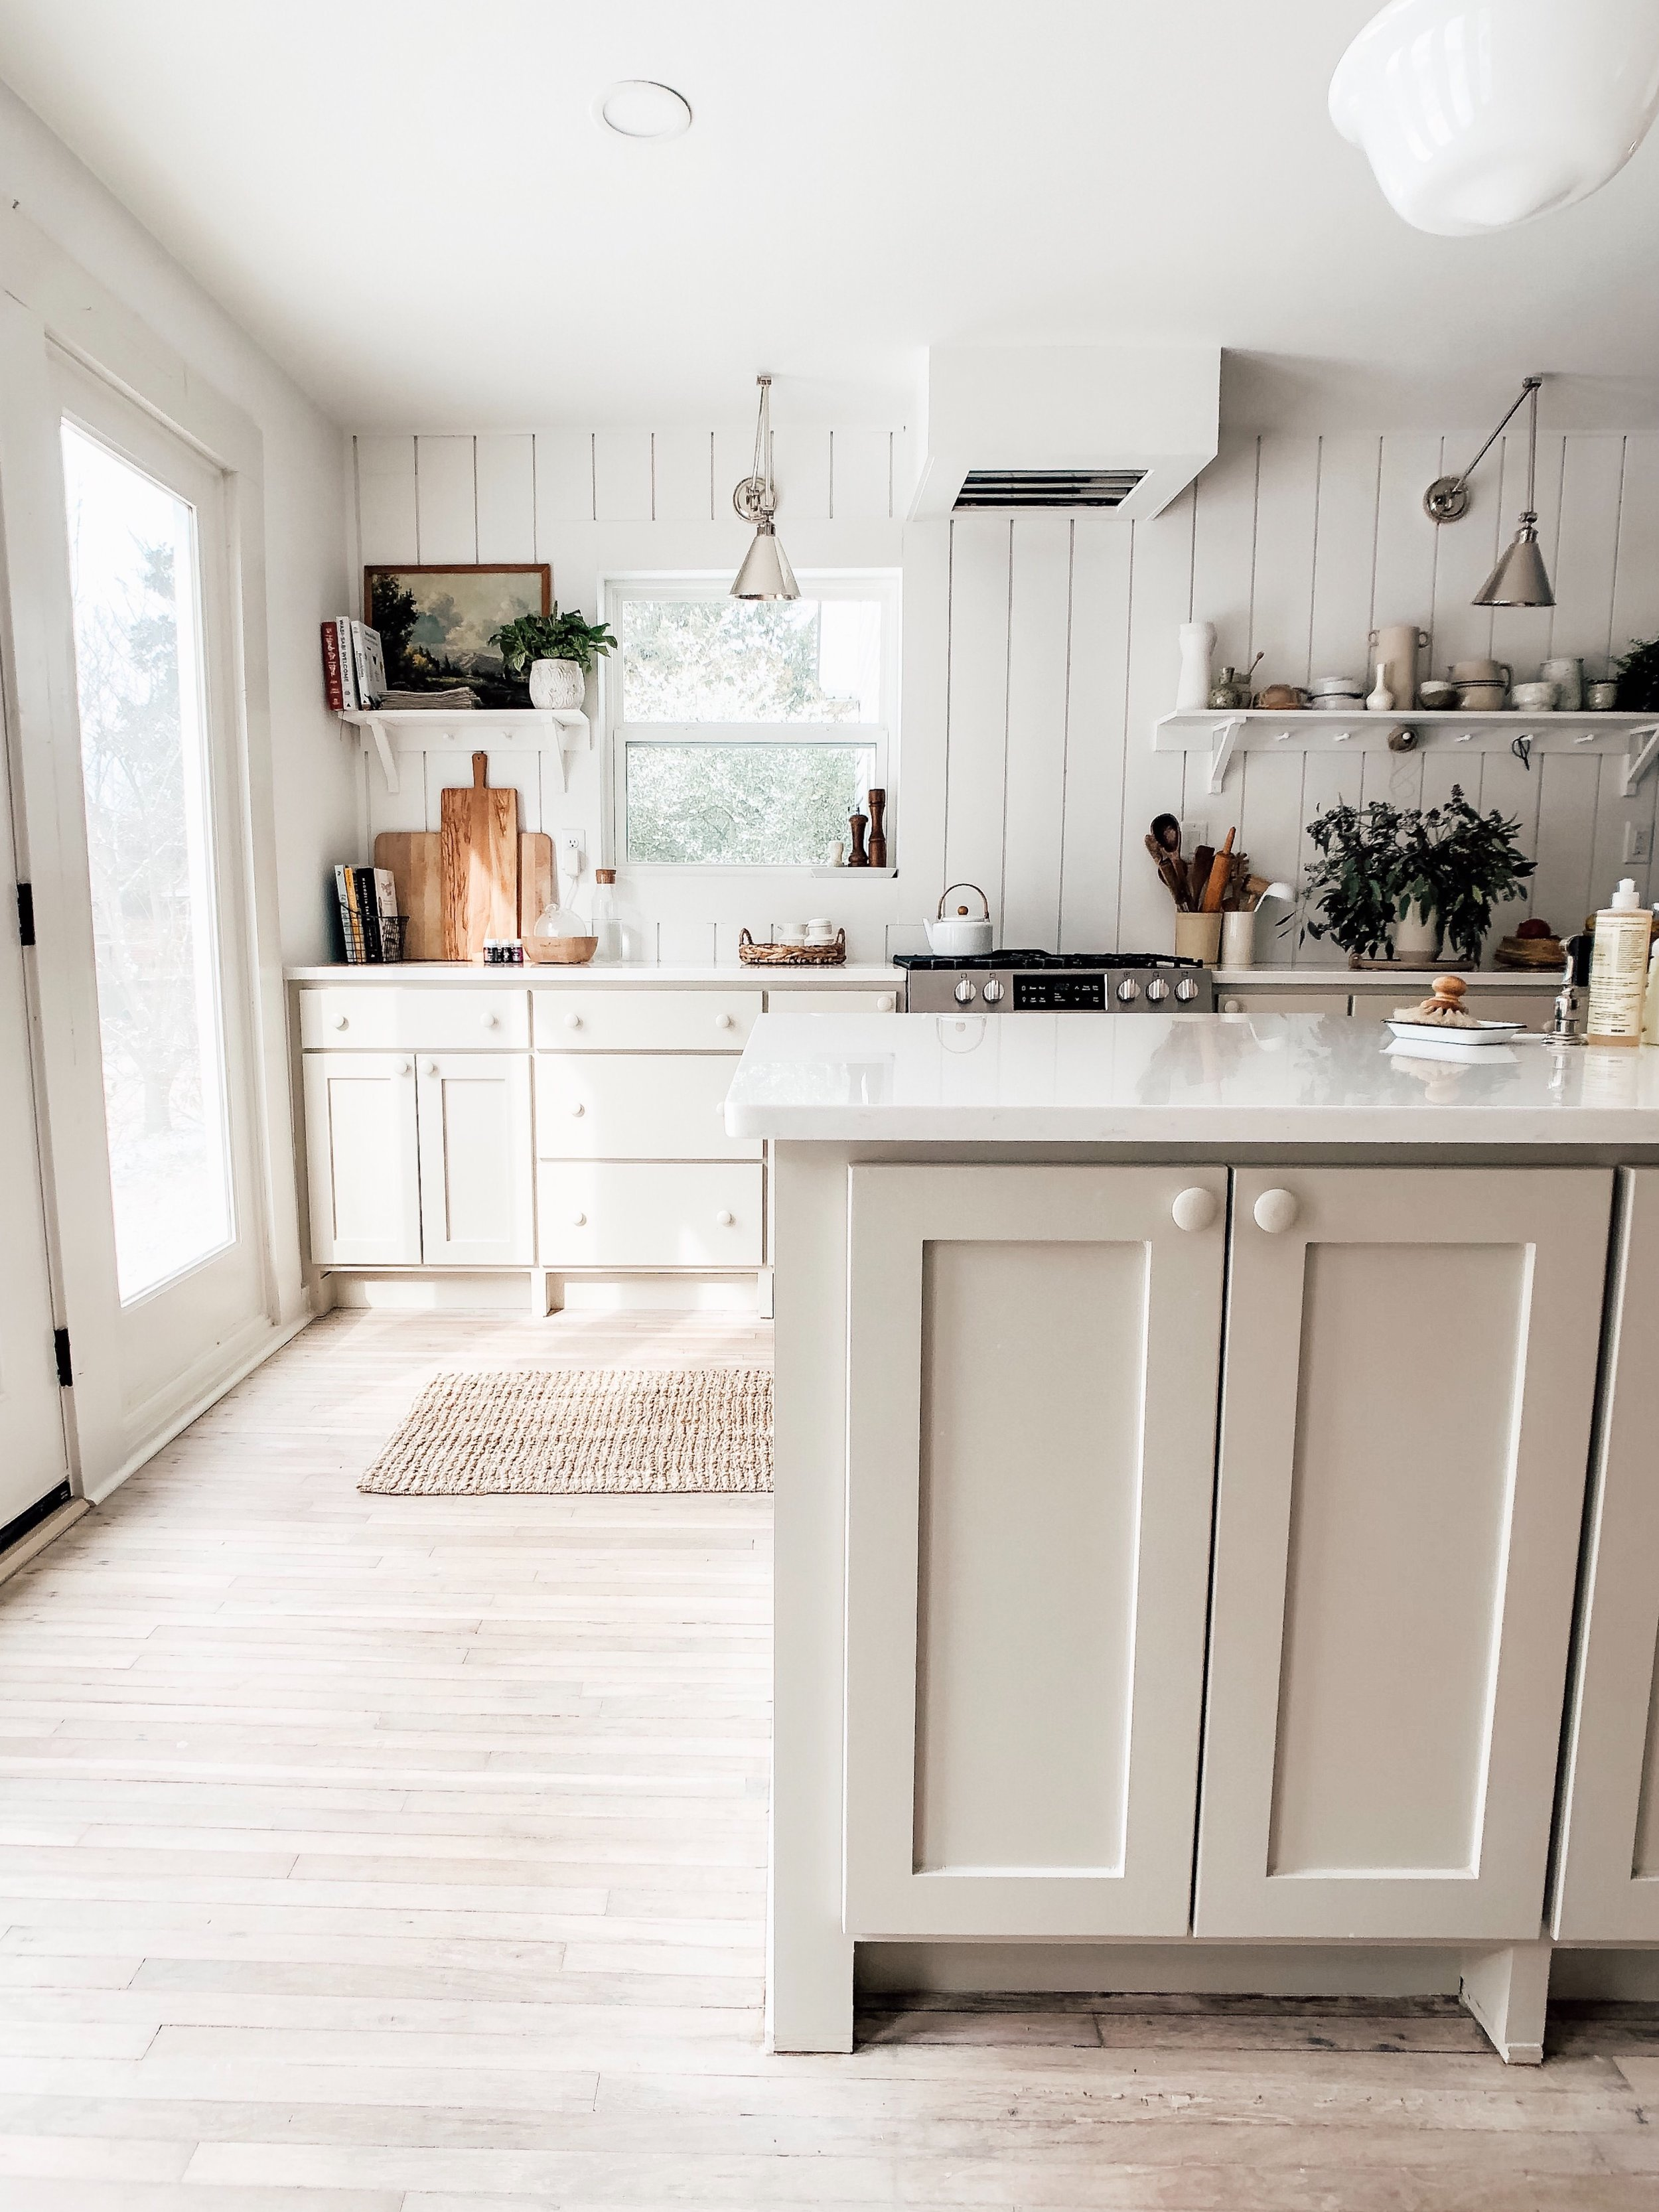 Emily Sue Netz Kitchen // neutral cabinet paint colors for kitchens // the Grit and Polish